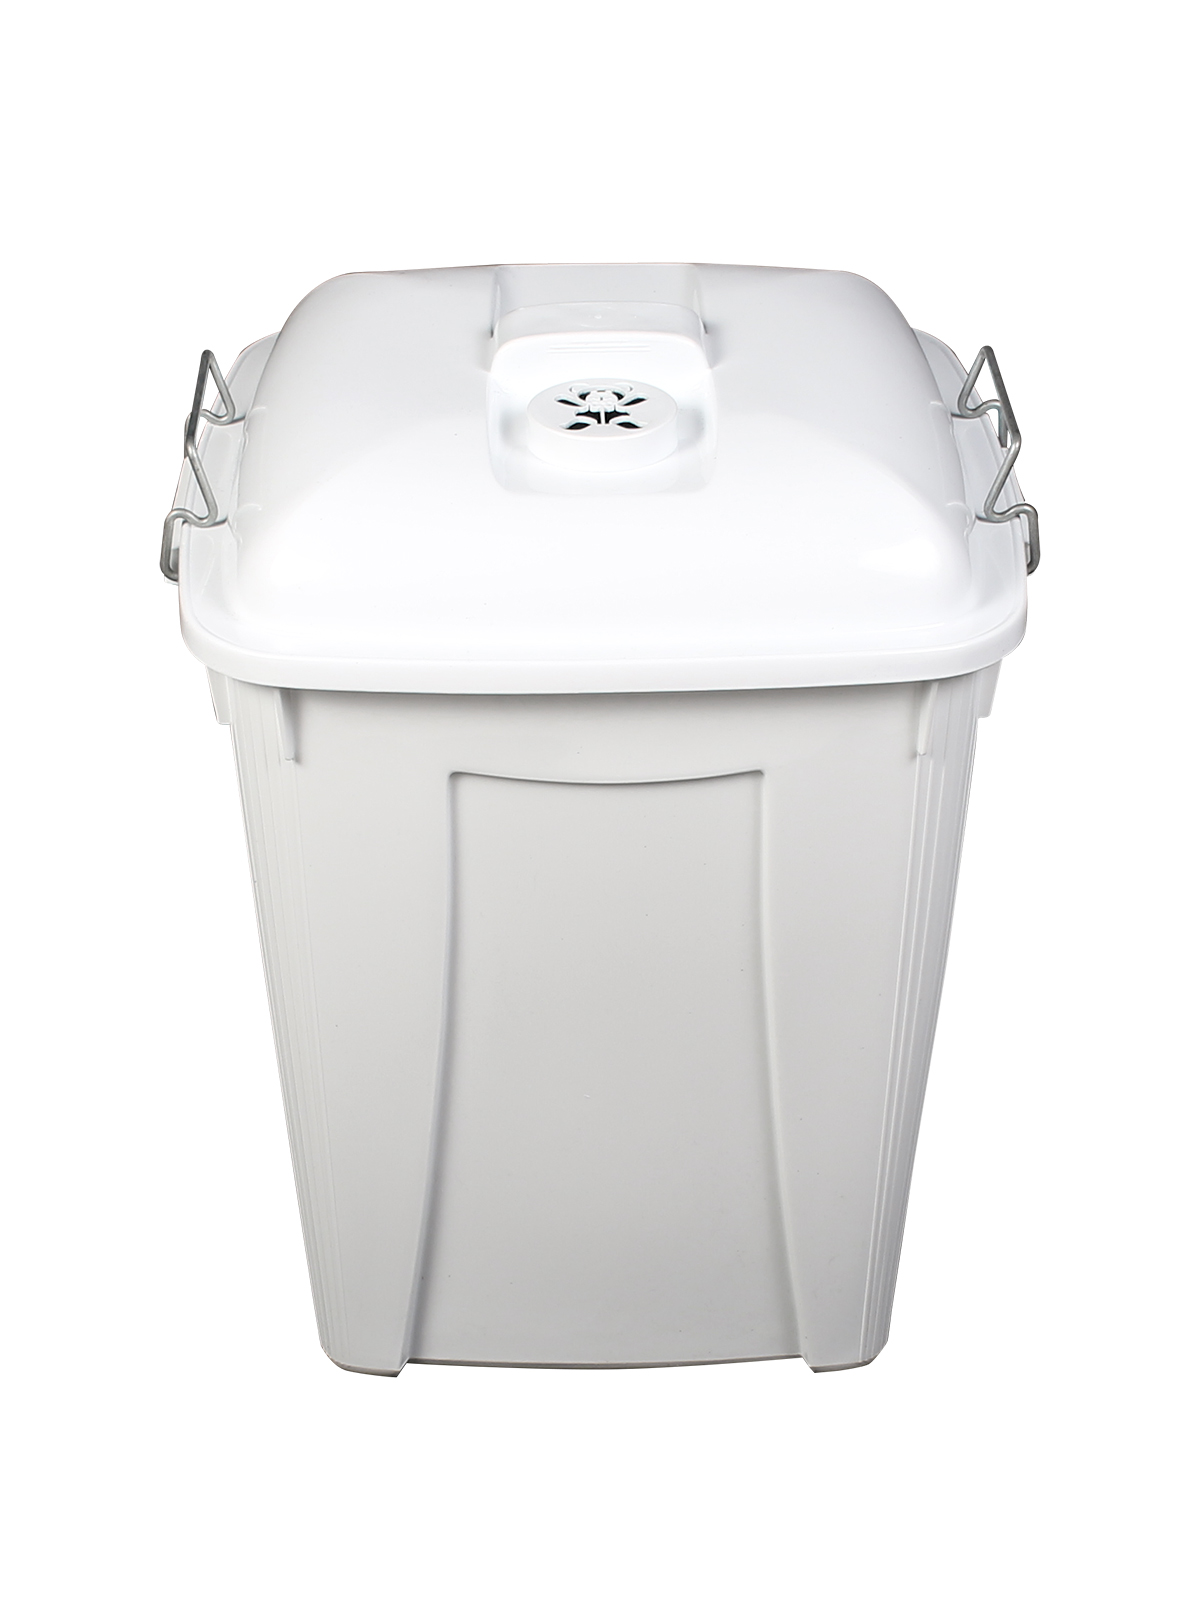 DIAPER PAIL (6 Pack) - Single - 14 G - Vented Lift - White